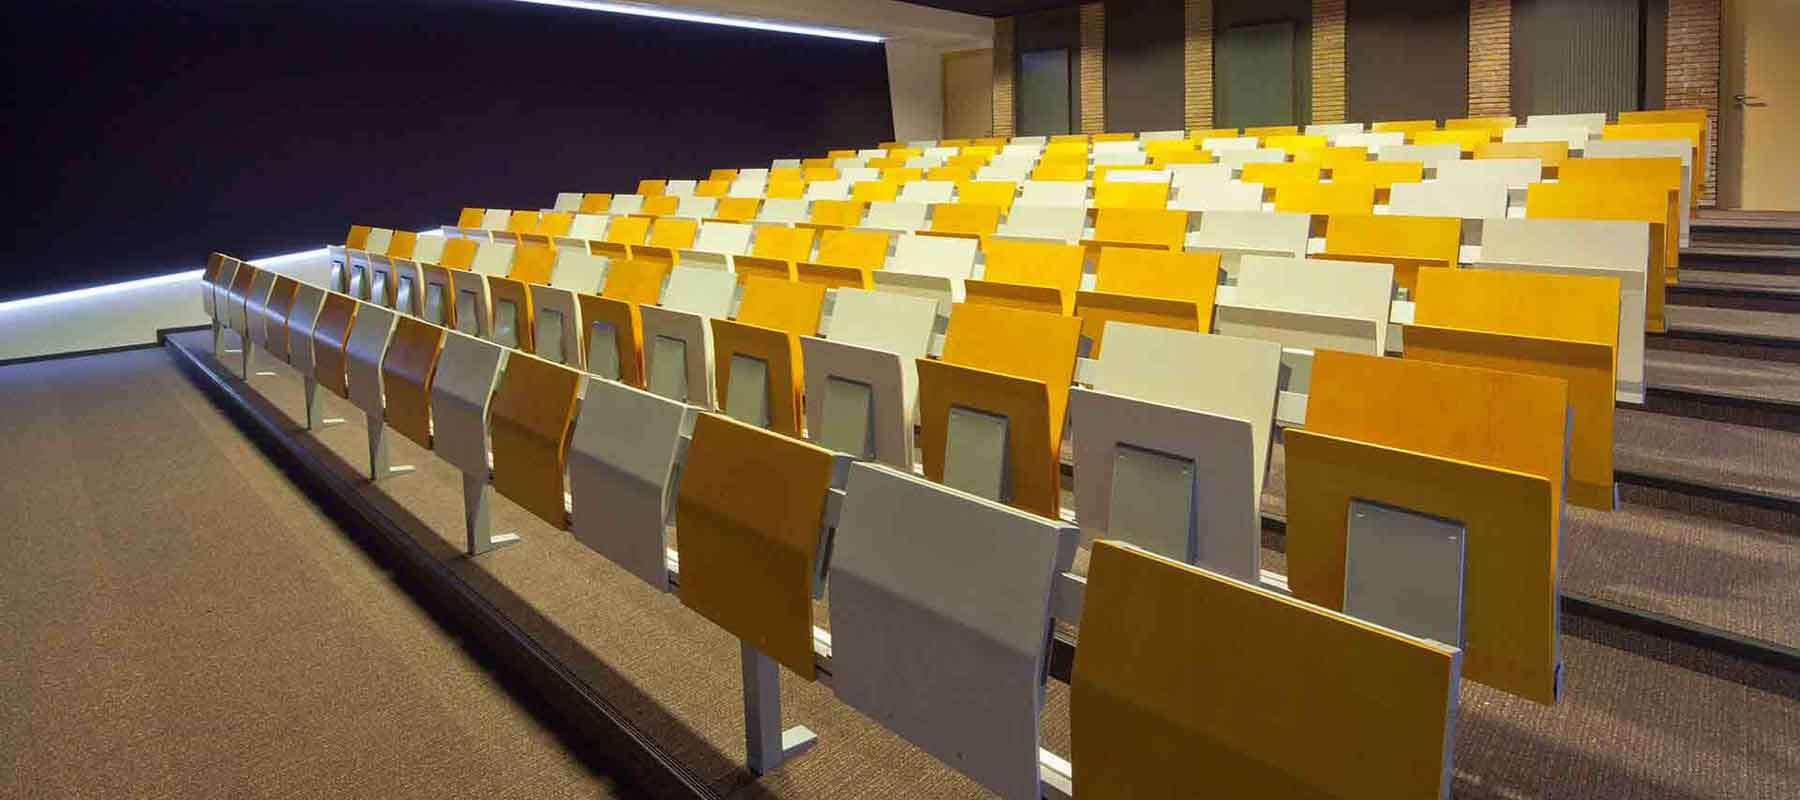 Education & Lecture theatre seating | Woodwood Group